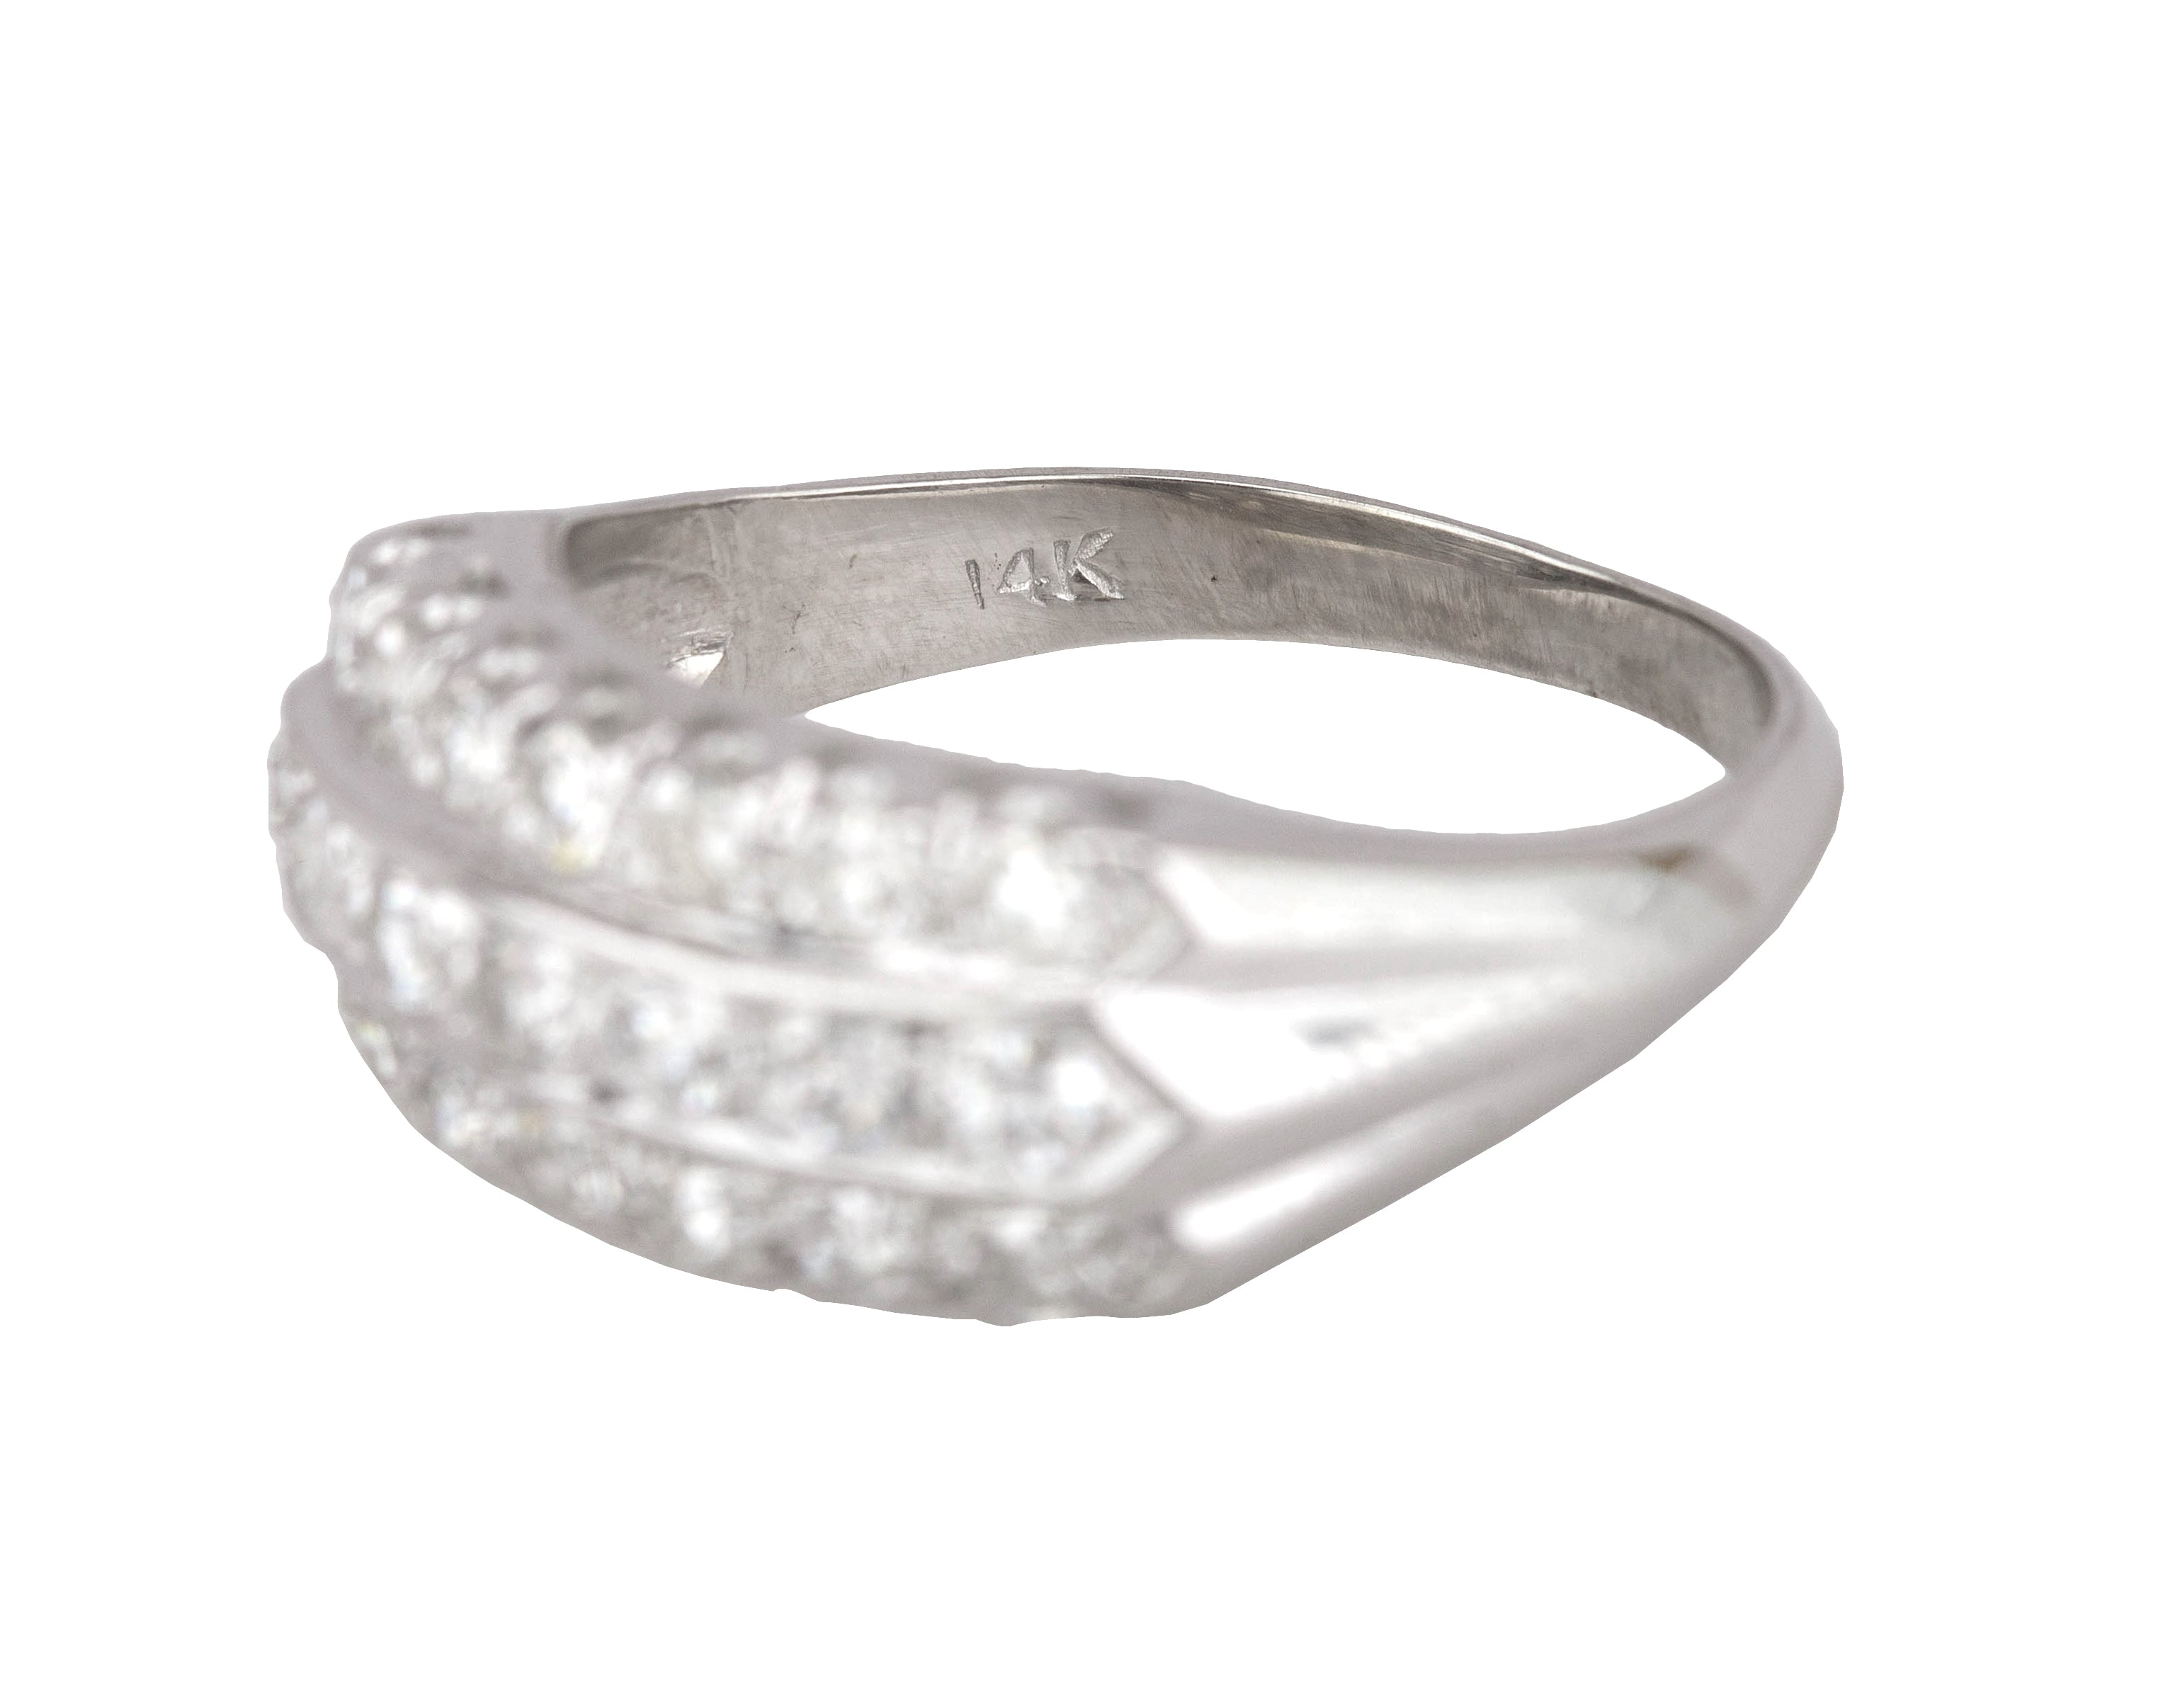 1930's Antique Art Deco 14K White Gold 0.70ctw Diamond Wedding Band Ring